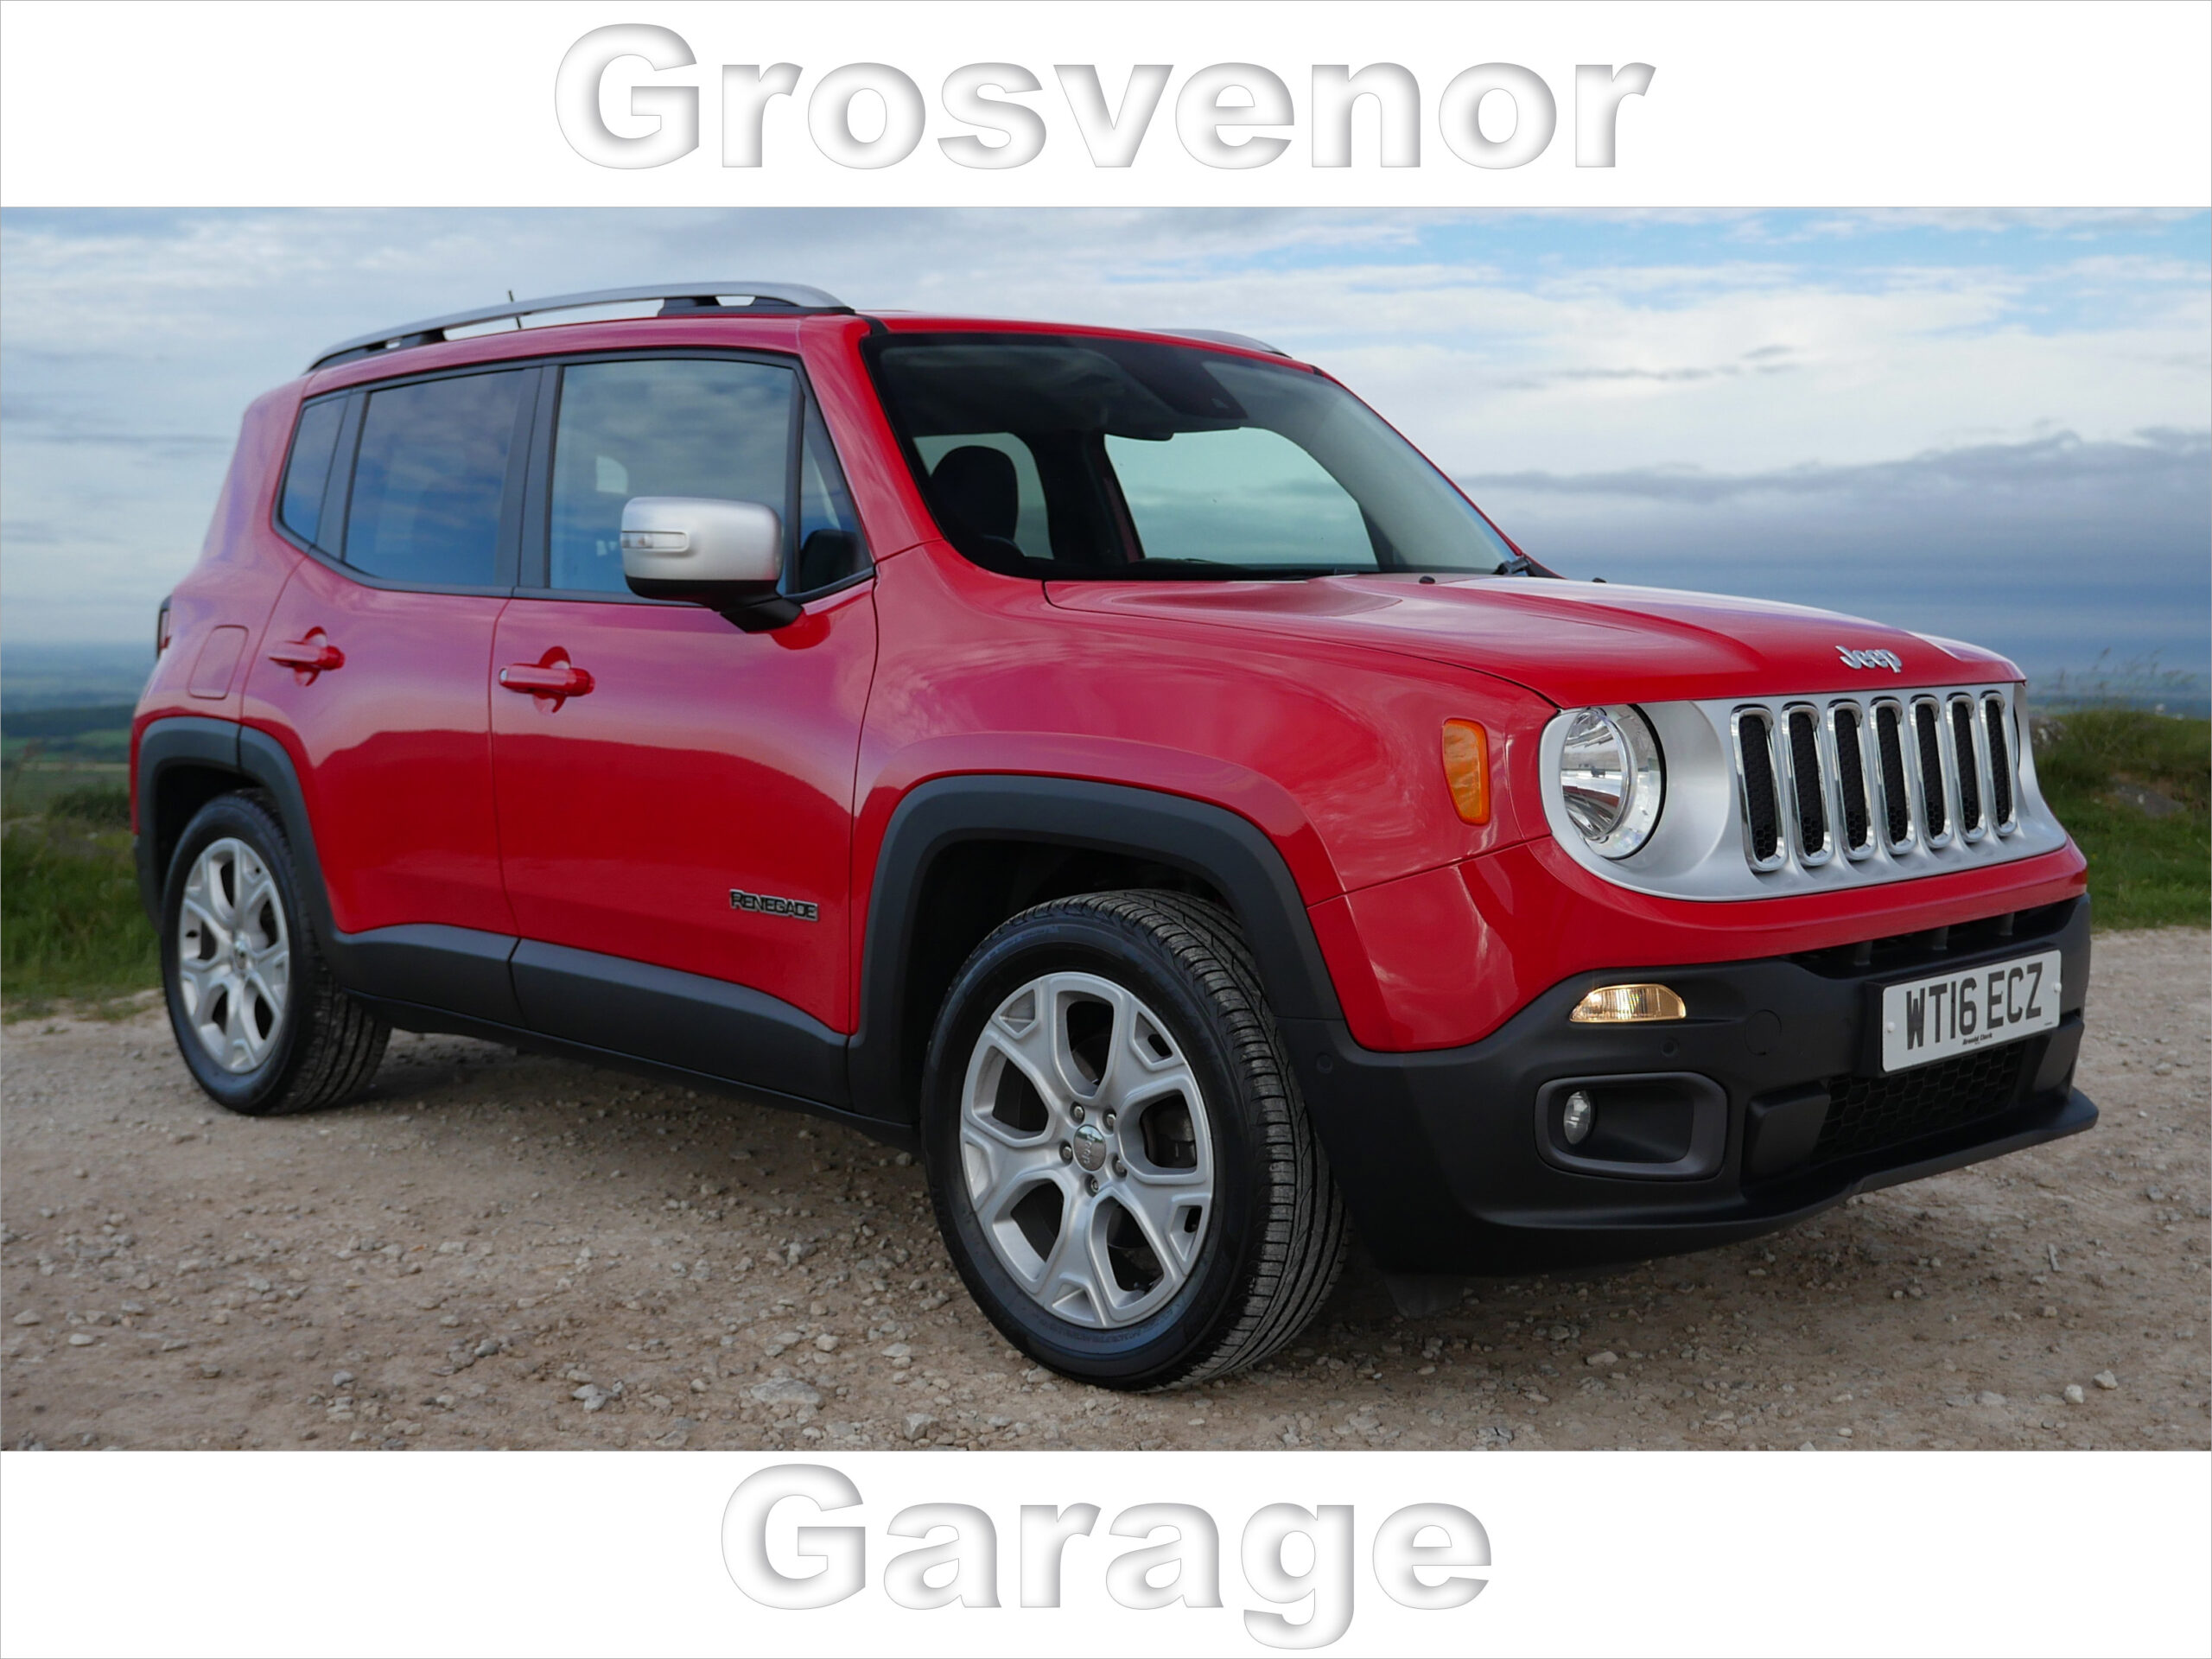 2016 (16) JEEP RENEGADE 1.6 M-JET LIMITED 5DR